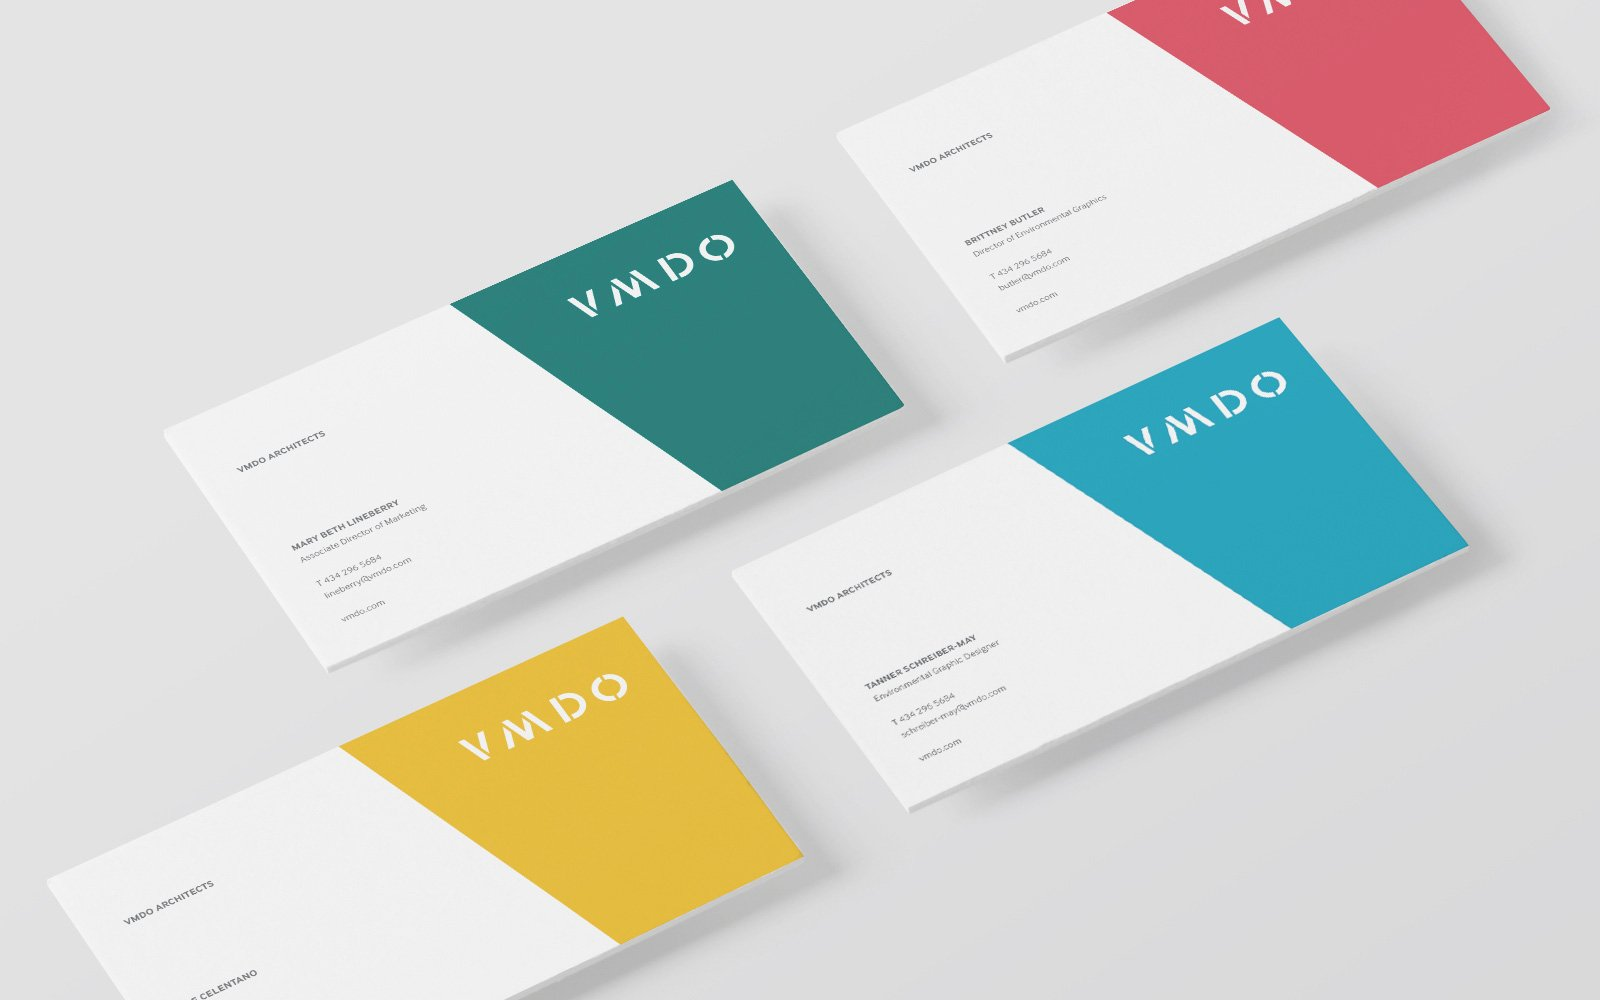 Best Architecture Firm Branding and Design